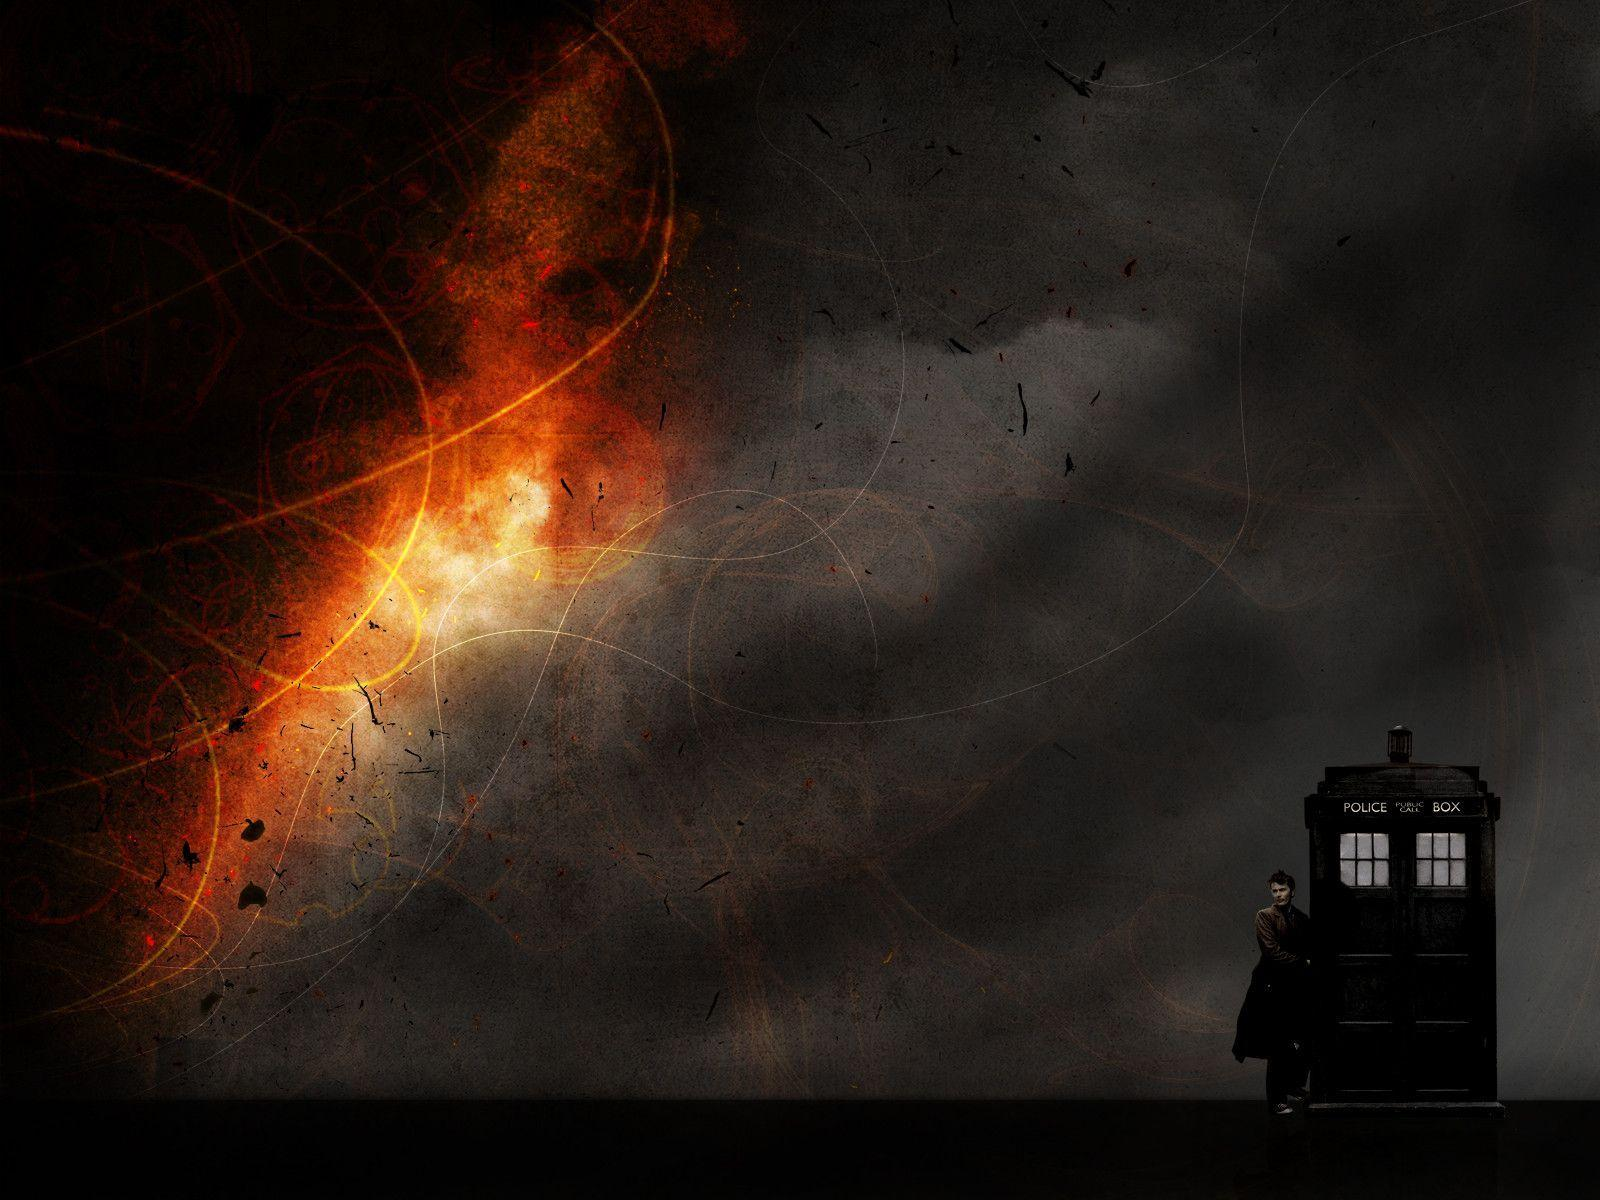 Doctor Who Wallpapers HD Wallpapers